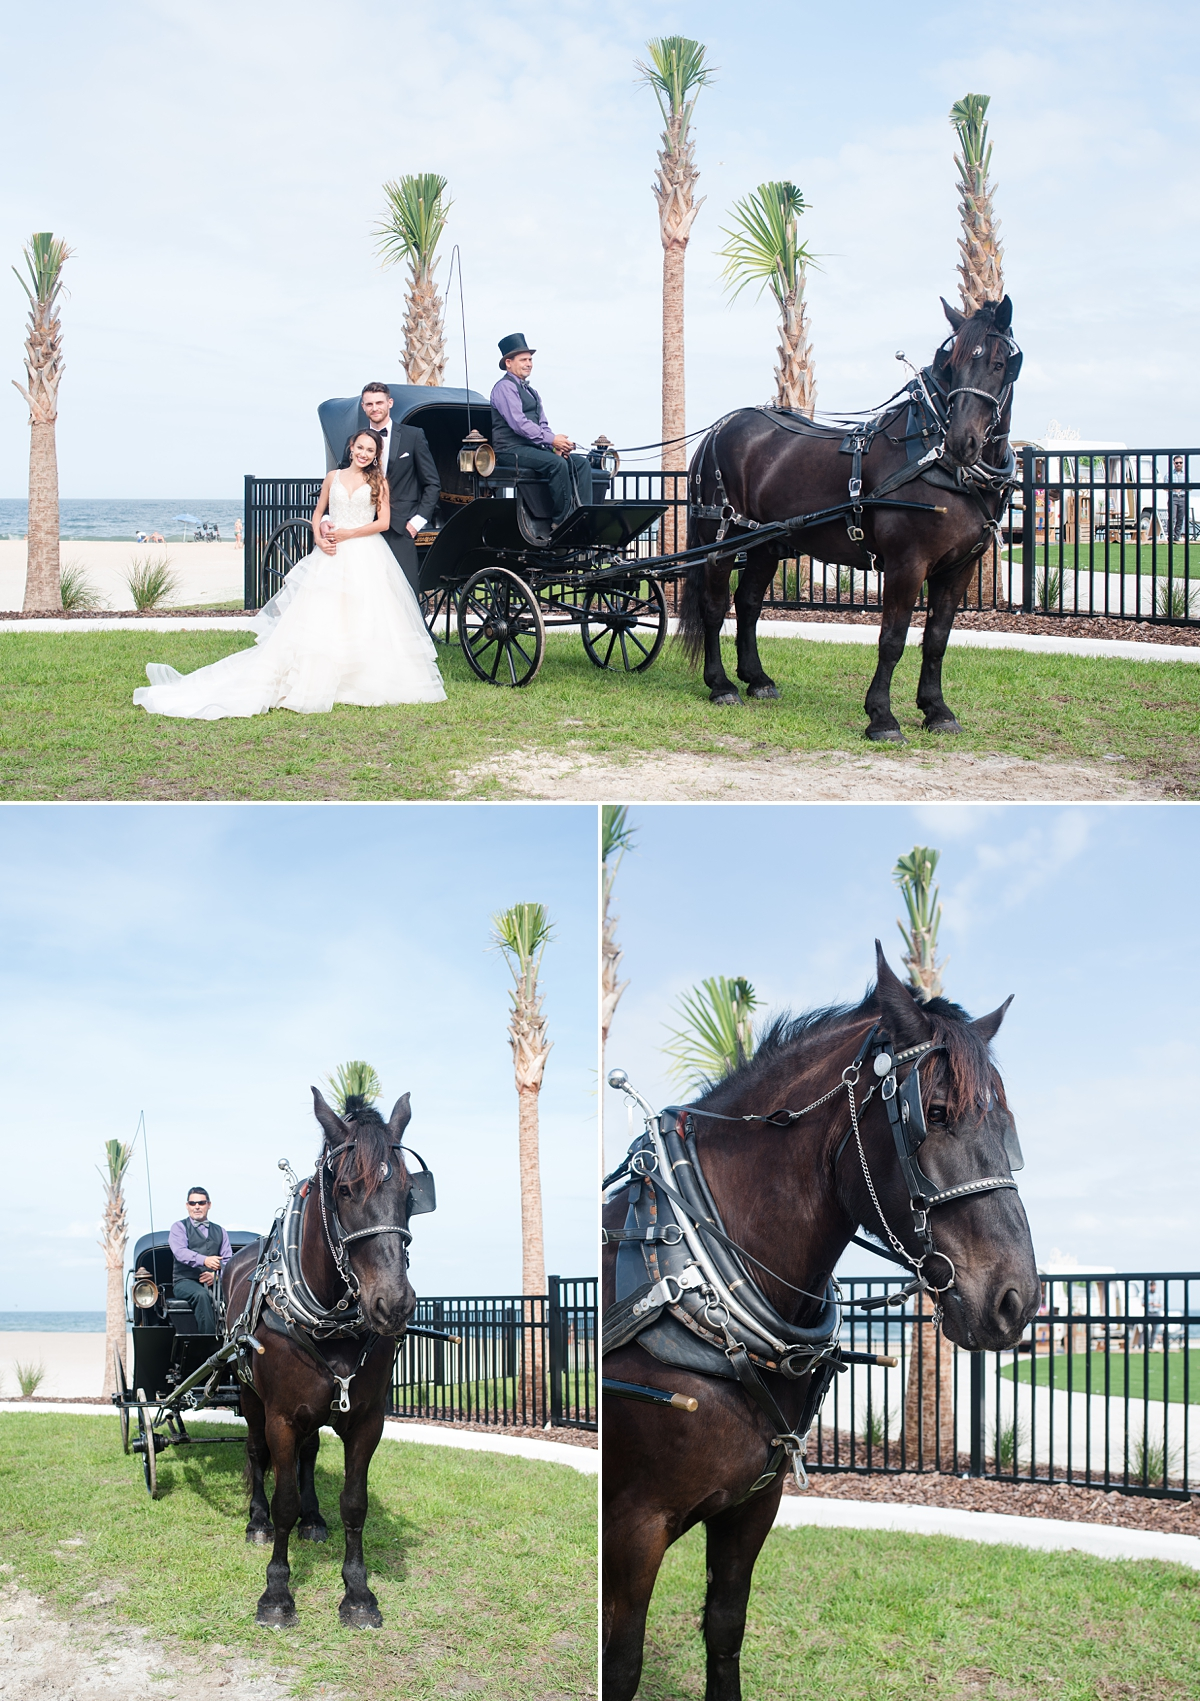 St Augustine Beach-Styled Wedding Fashion-Horse and Carriage-Wedding Dress Inspiration.jpg